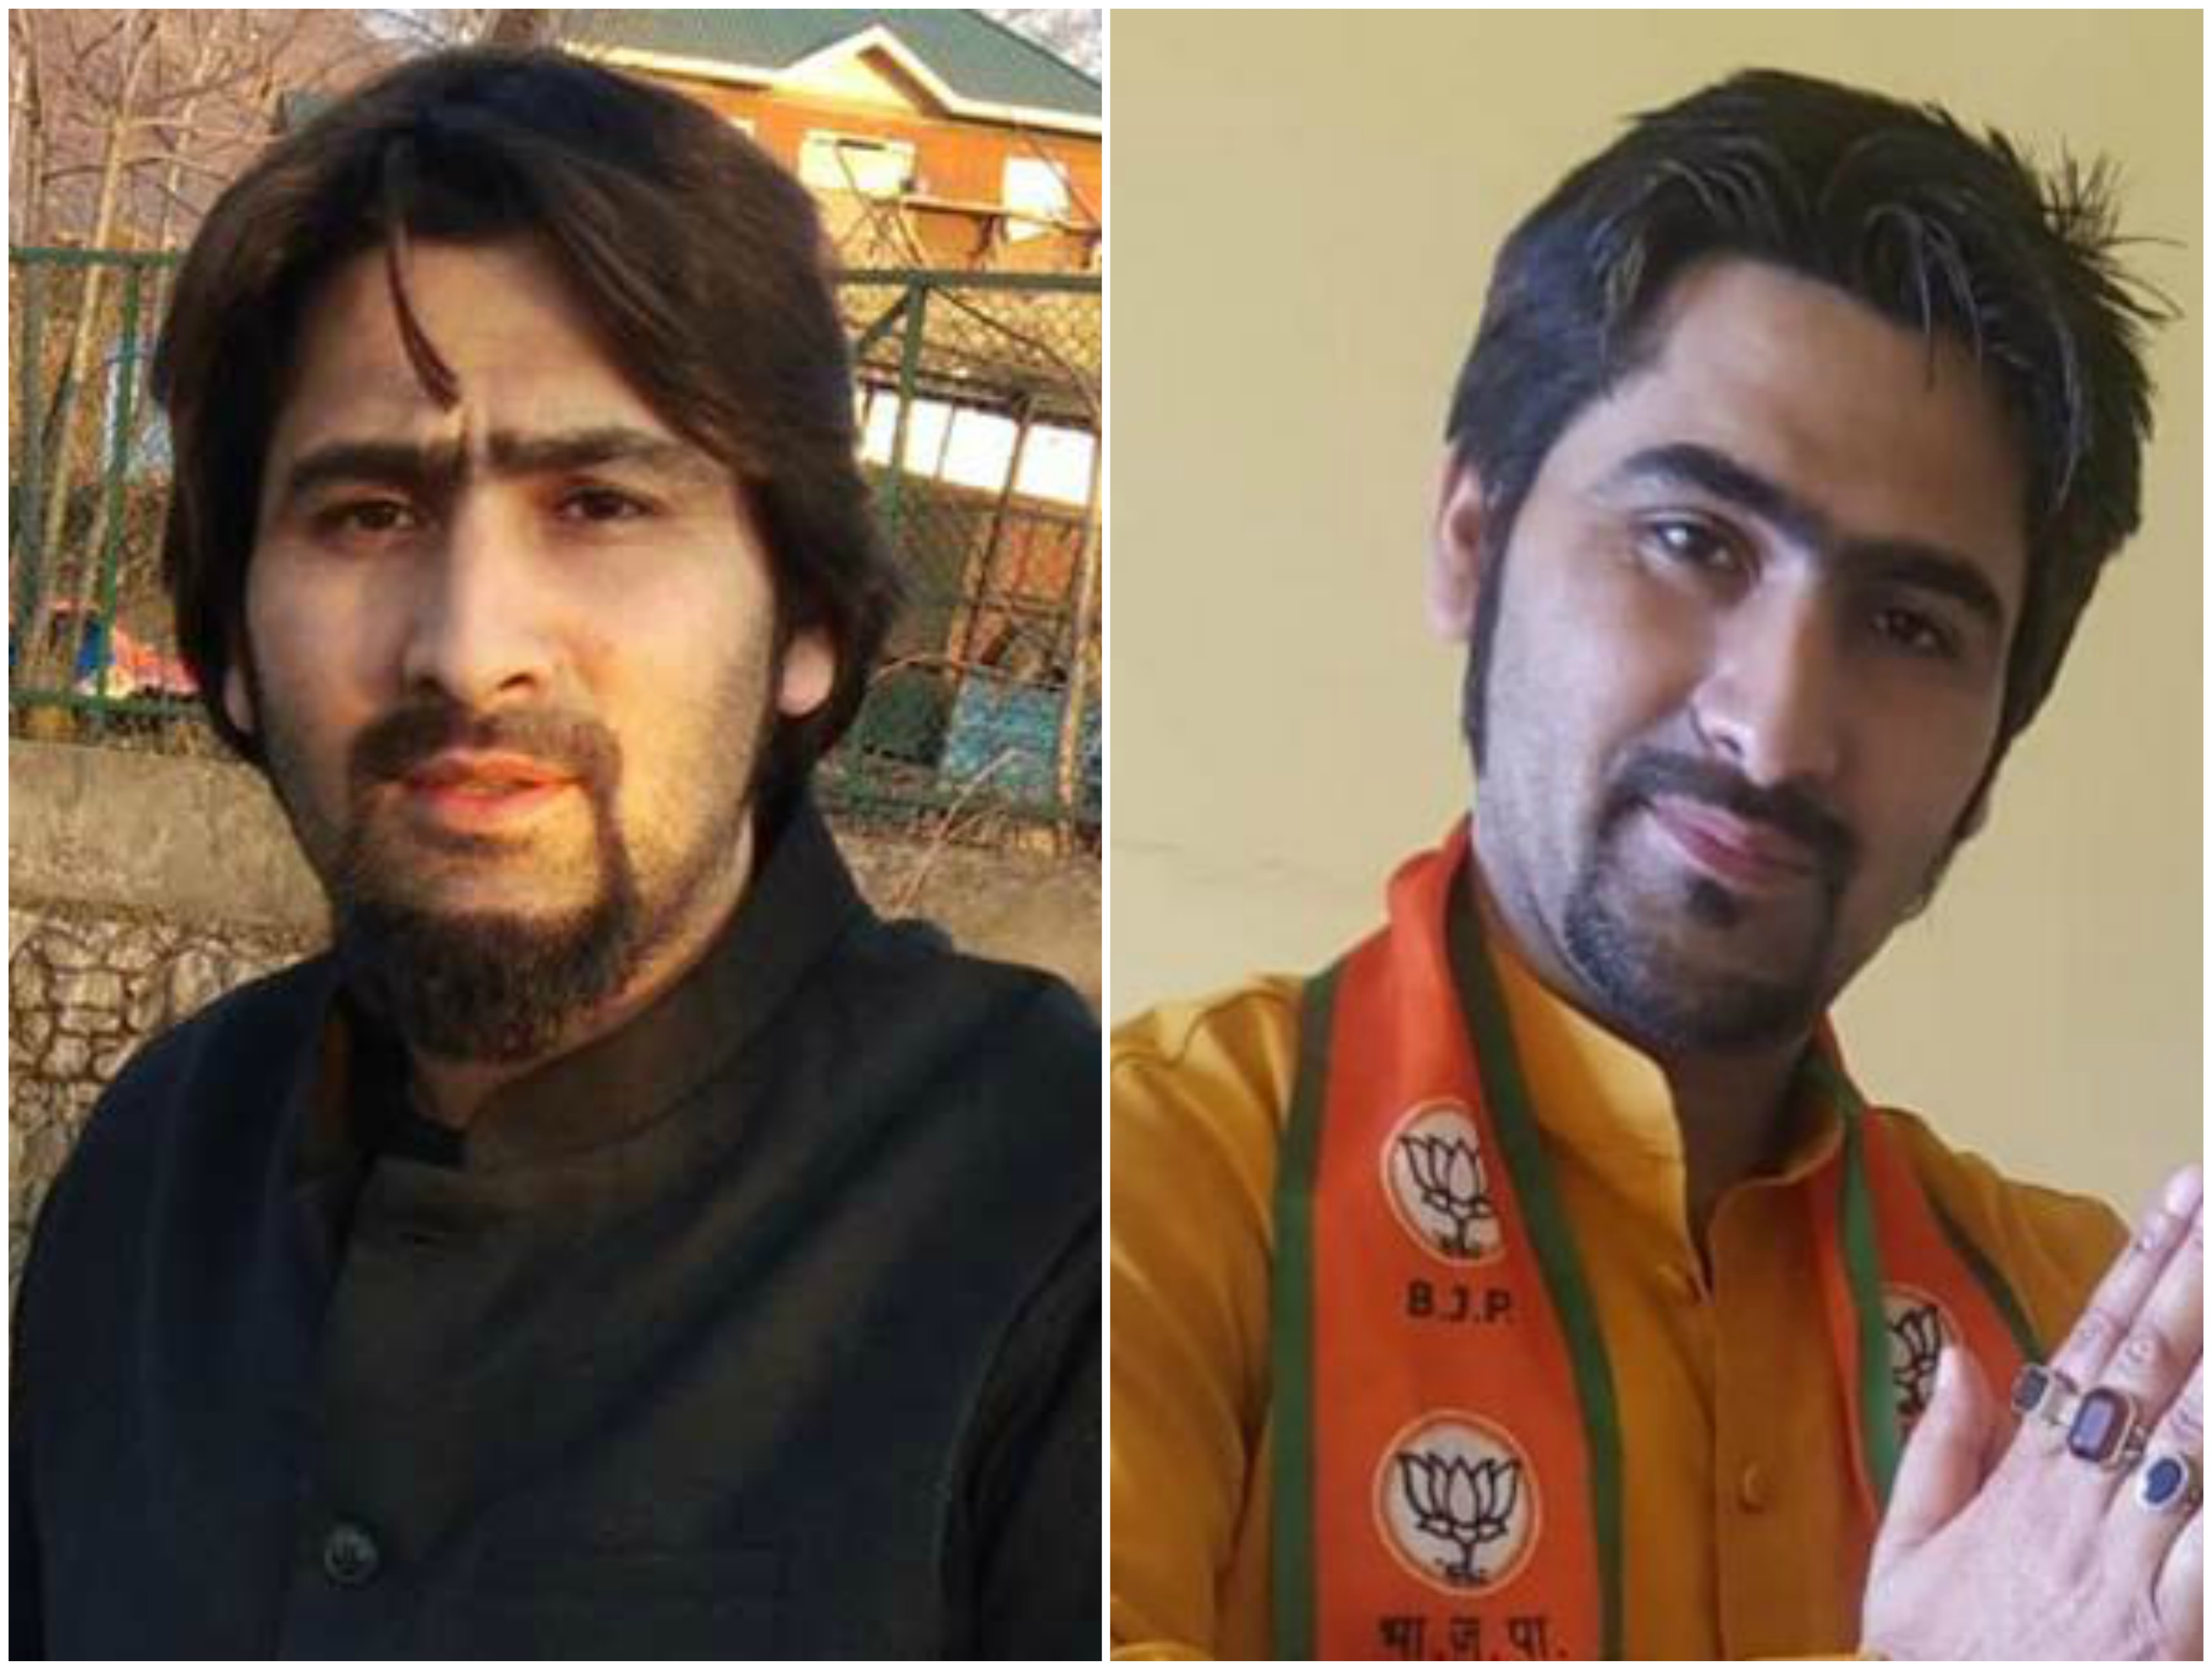 J&K: BJP Leader And Two Family Members Killed In Serious Security Lapse